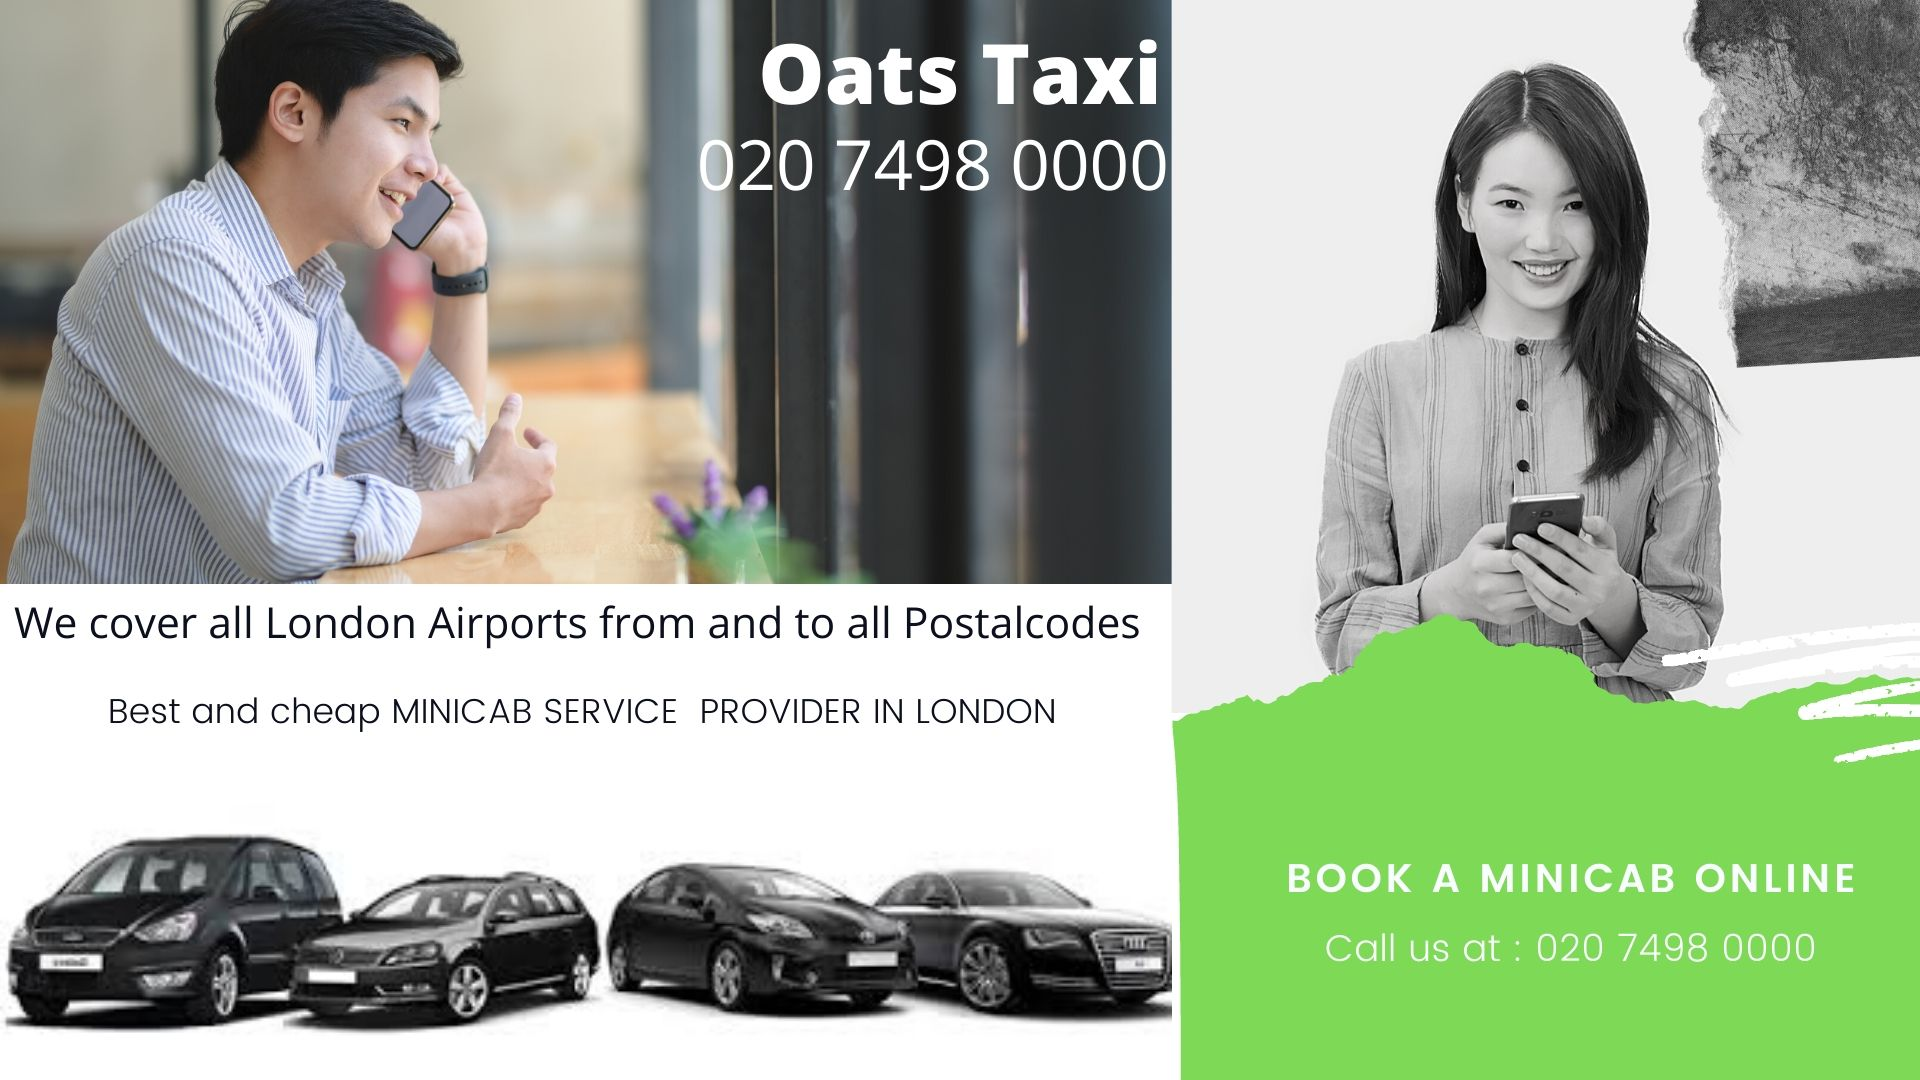 Nearest Taxi Office in Brompton | Nearest Taxi Office in Gatwick Airport | Call now : 02074980000